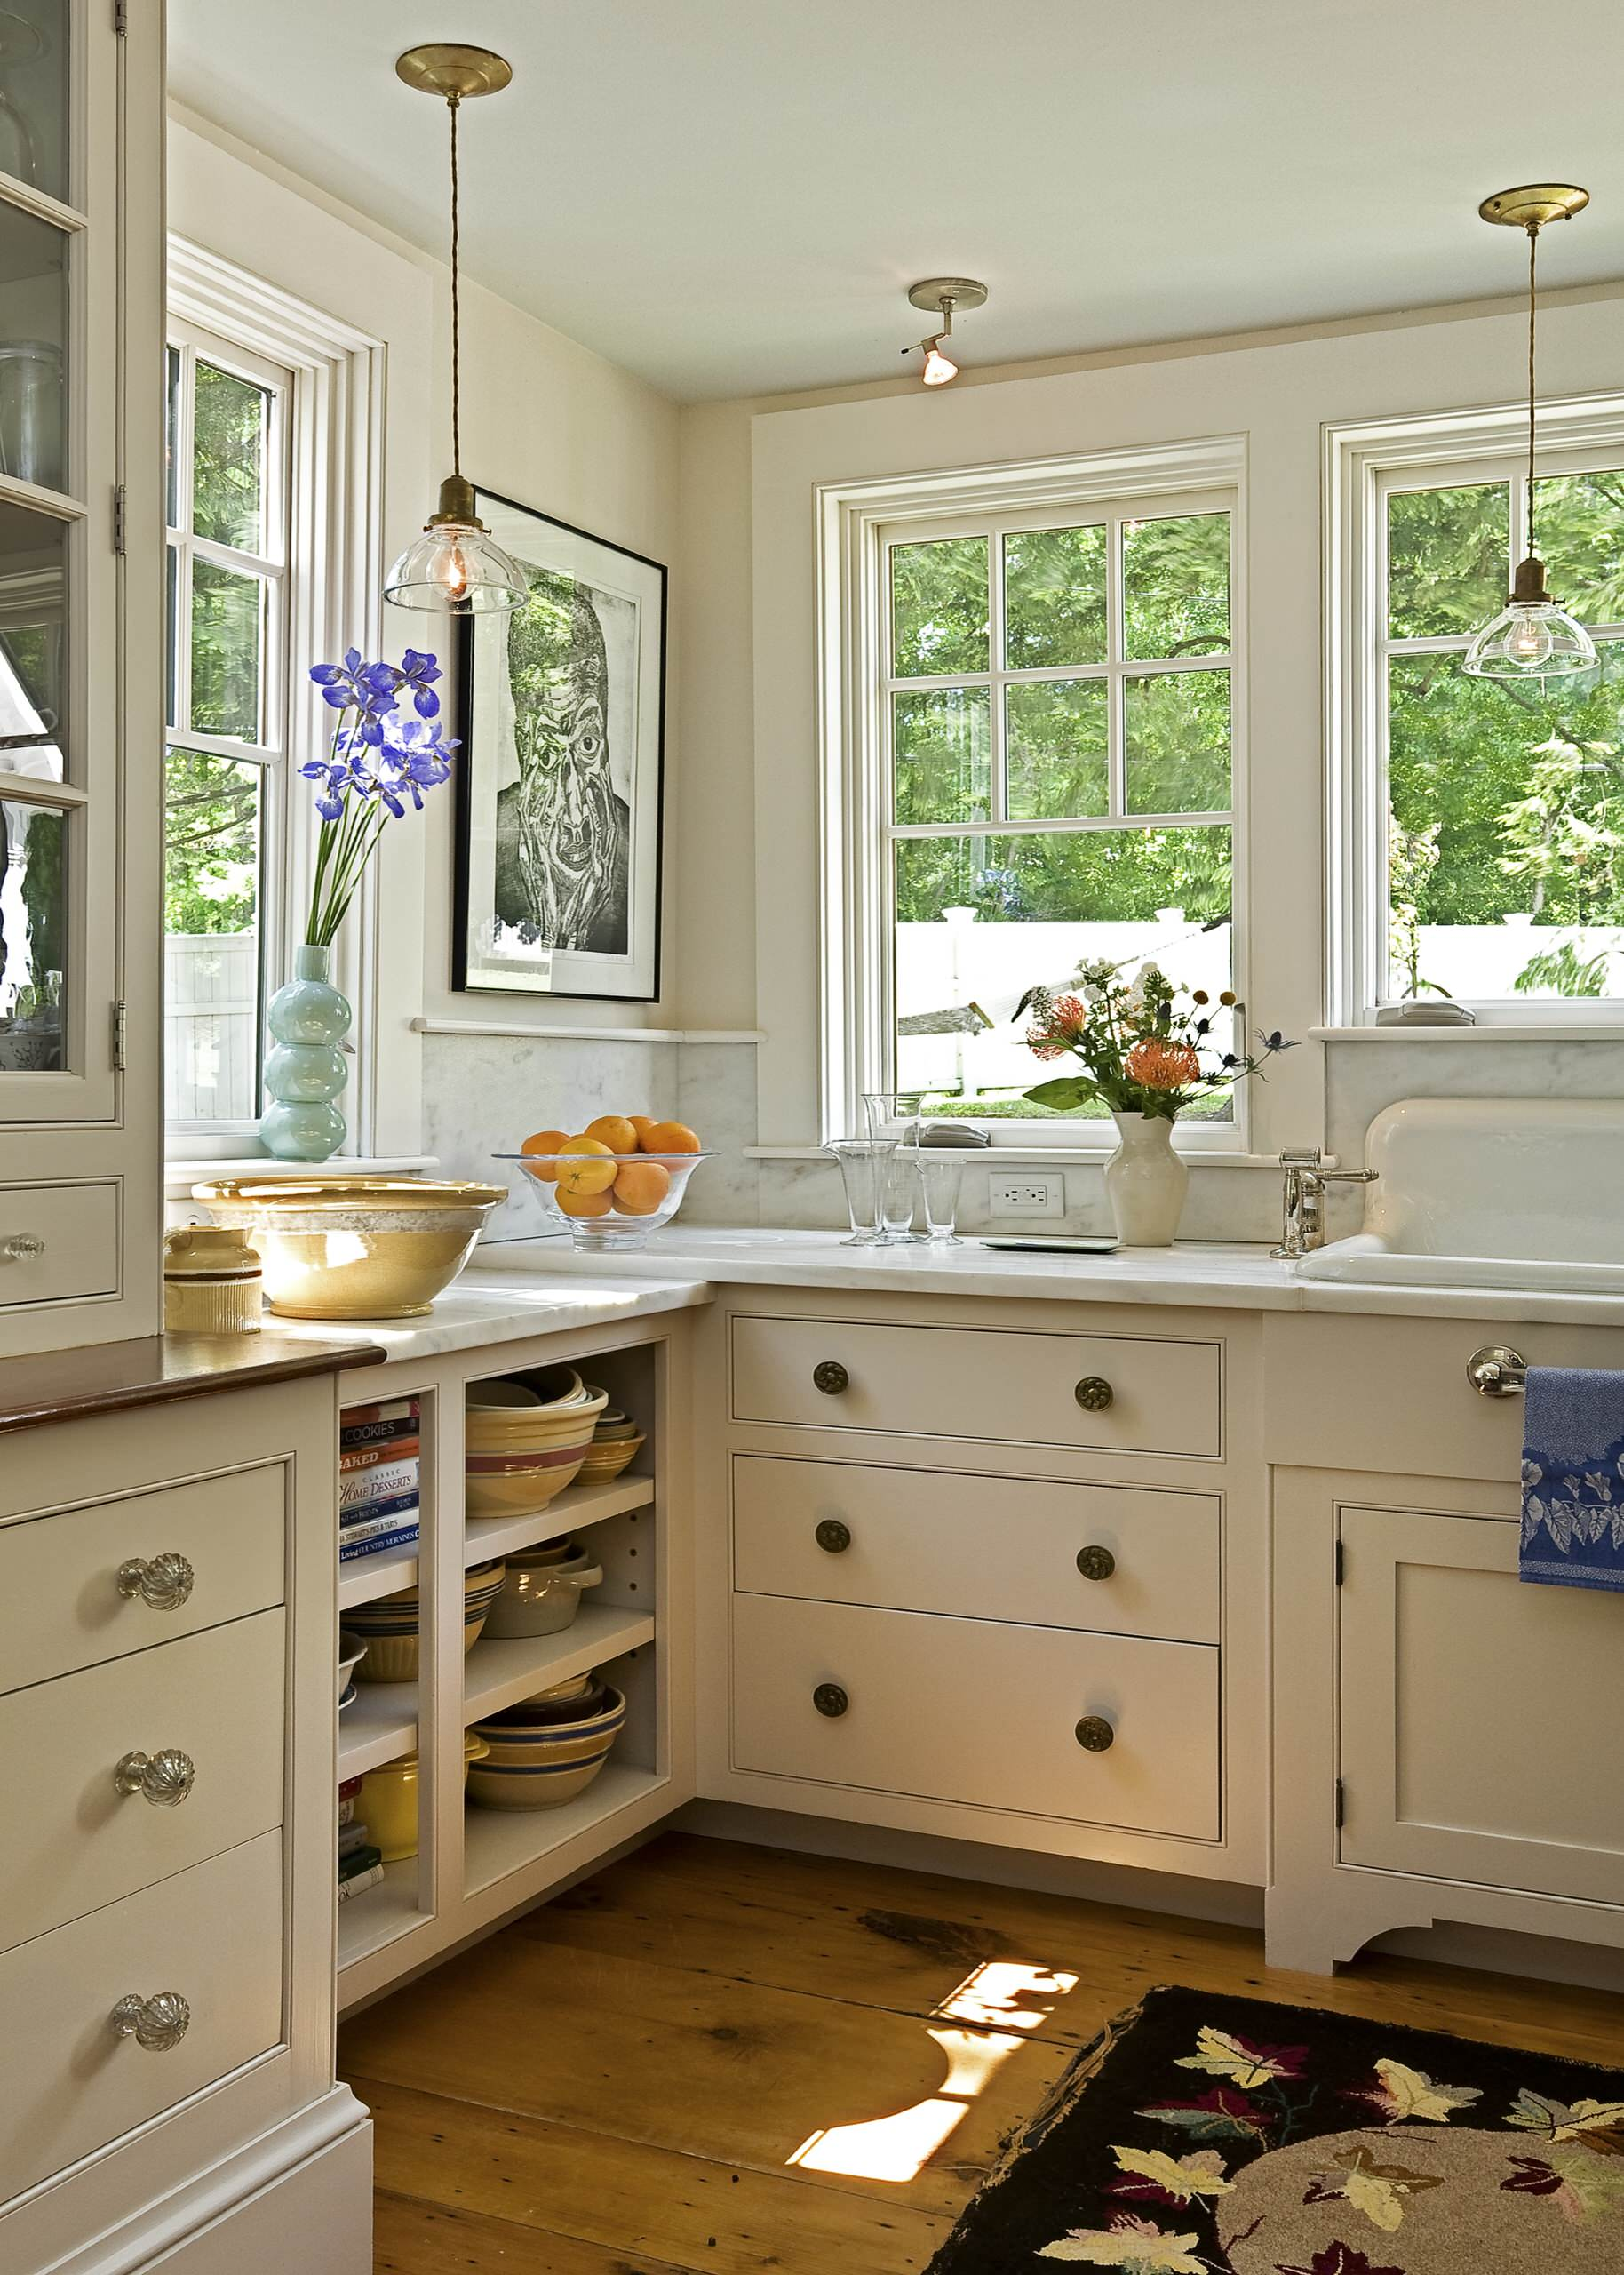 Cabinet Knobs and Handles Traditional Kitchen Farm Sink Glass Knobs Marble Backsplash White Painted Cabinets